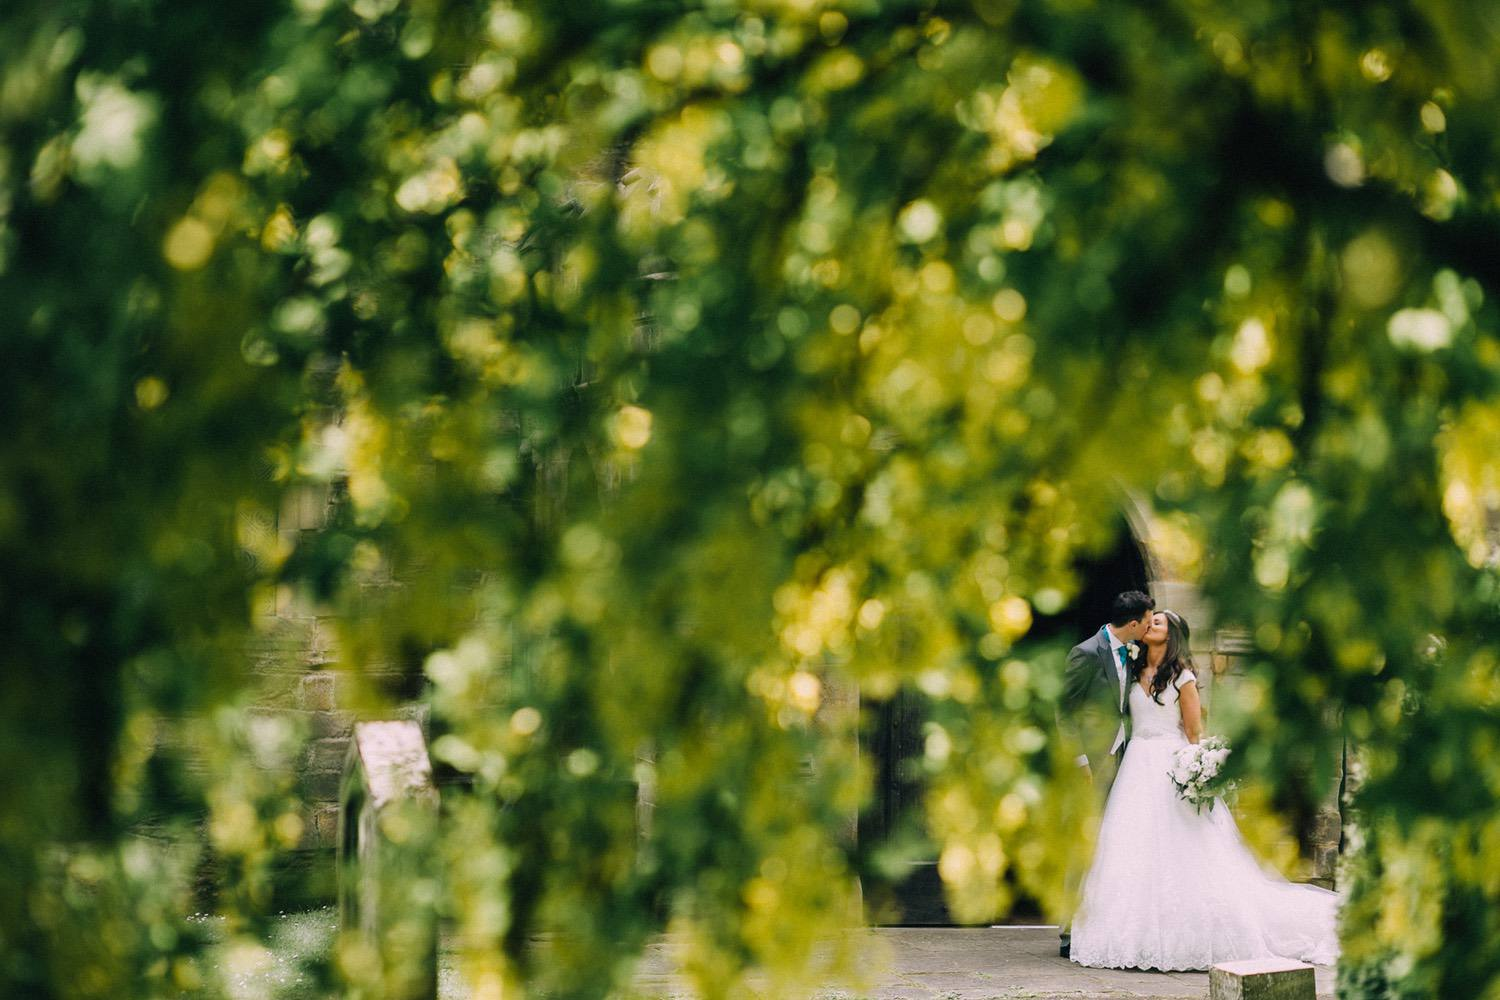 Wedding-Photographer-North-East-1.jpg